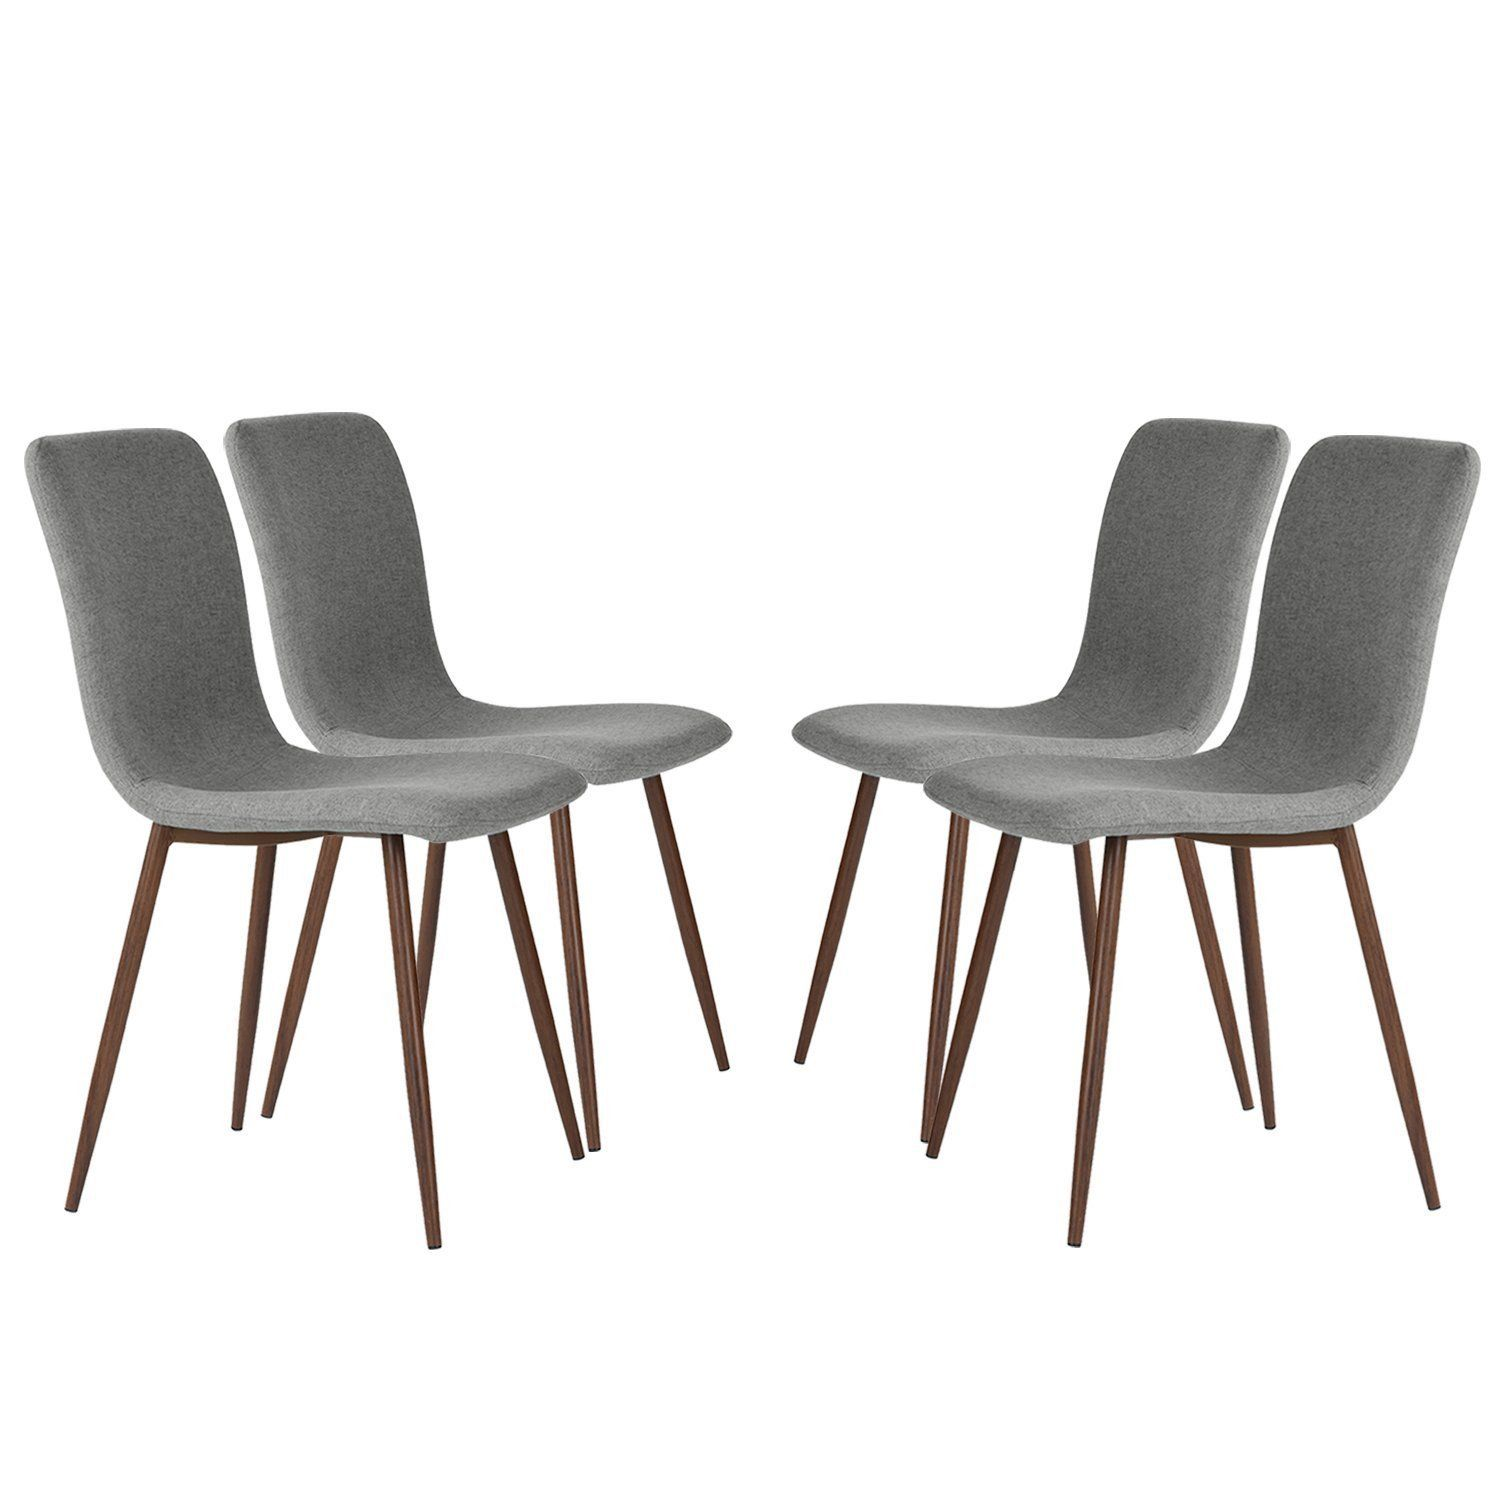 Set of 4 Eames Dining Chairs Coavas Fabric Cushion Kitchen Chairs